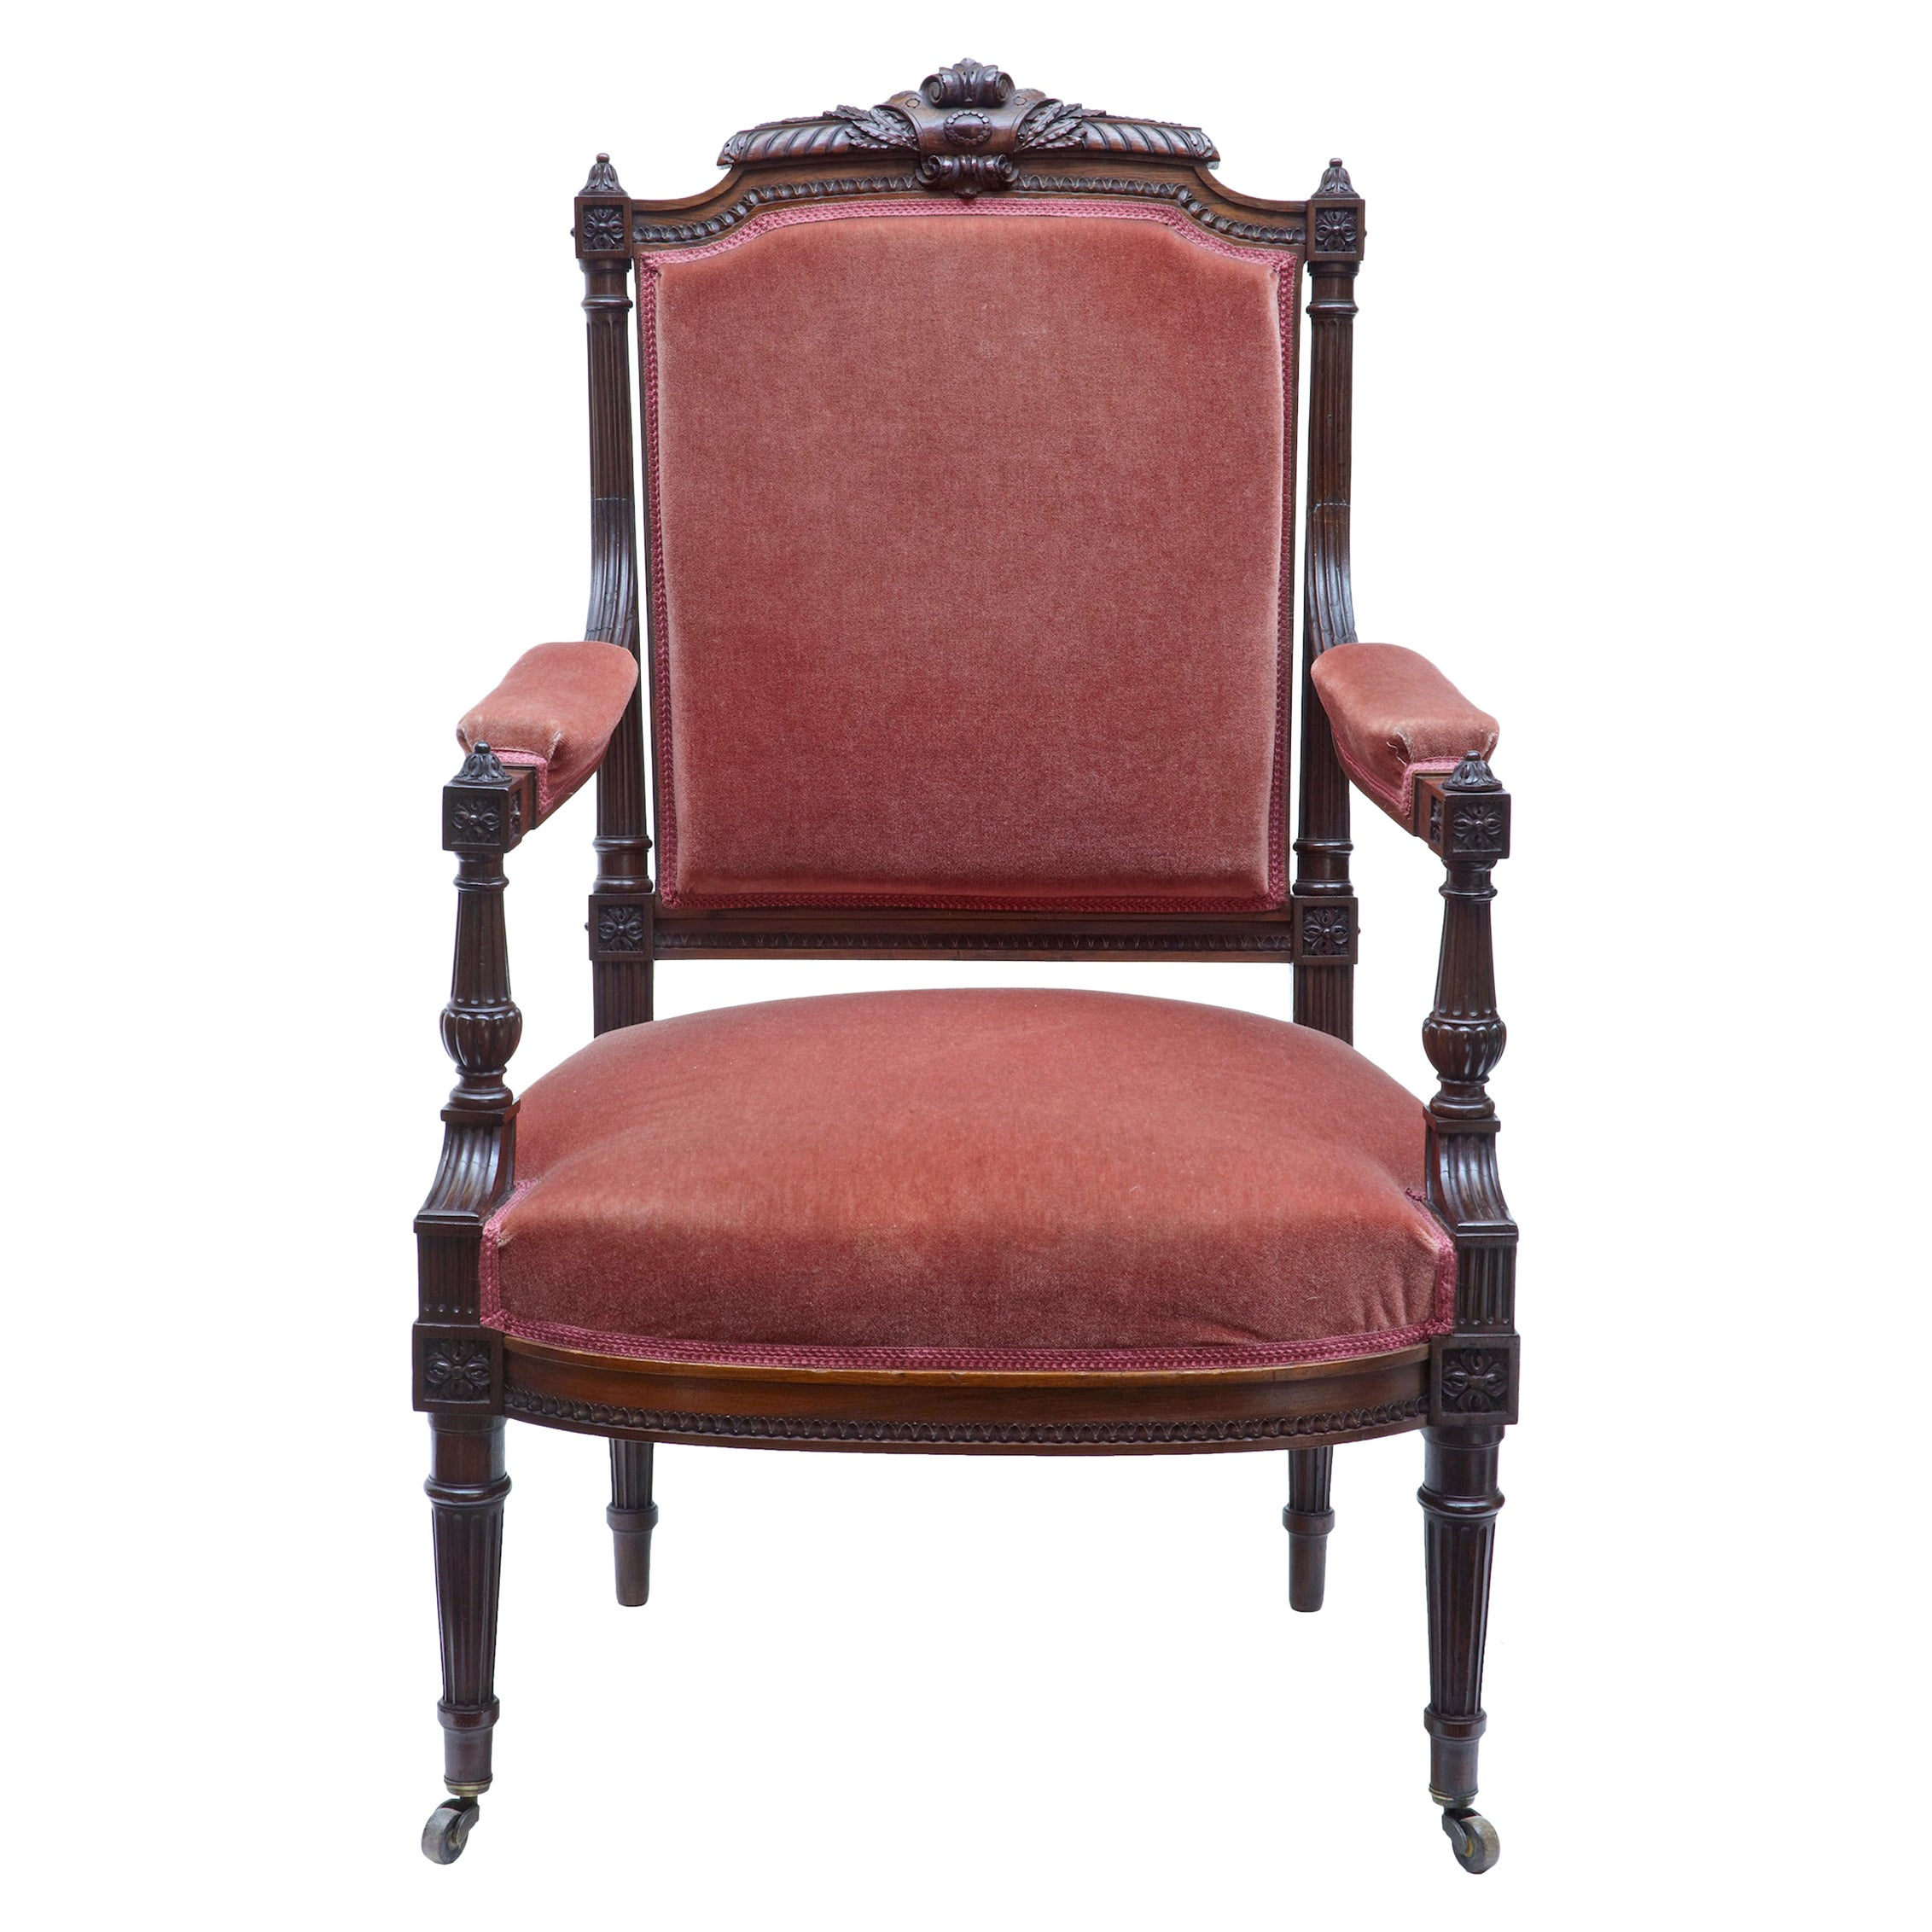 19th Century French Carved Palisander Armchair